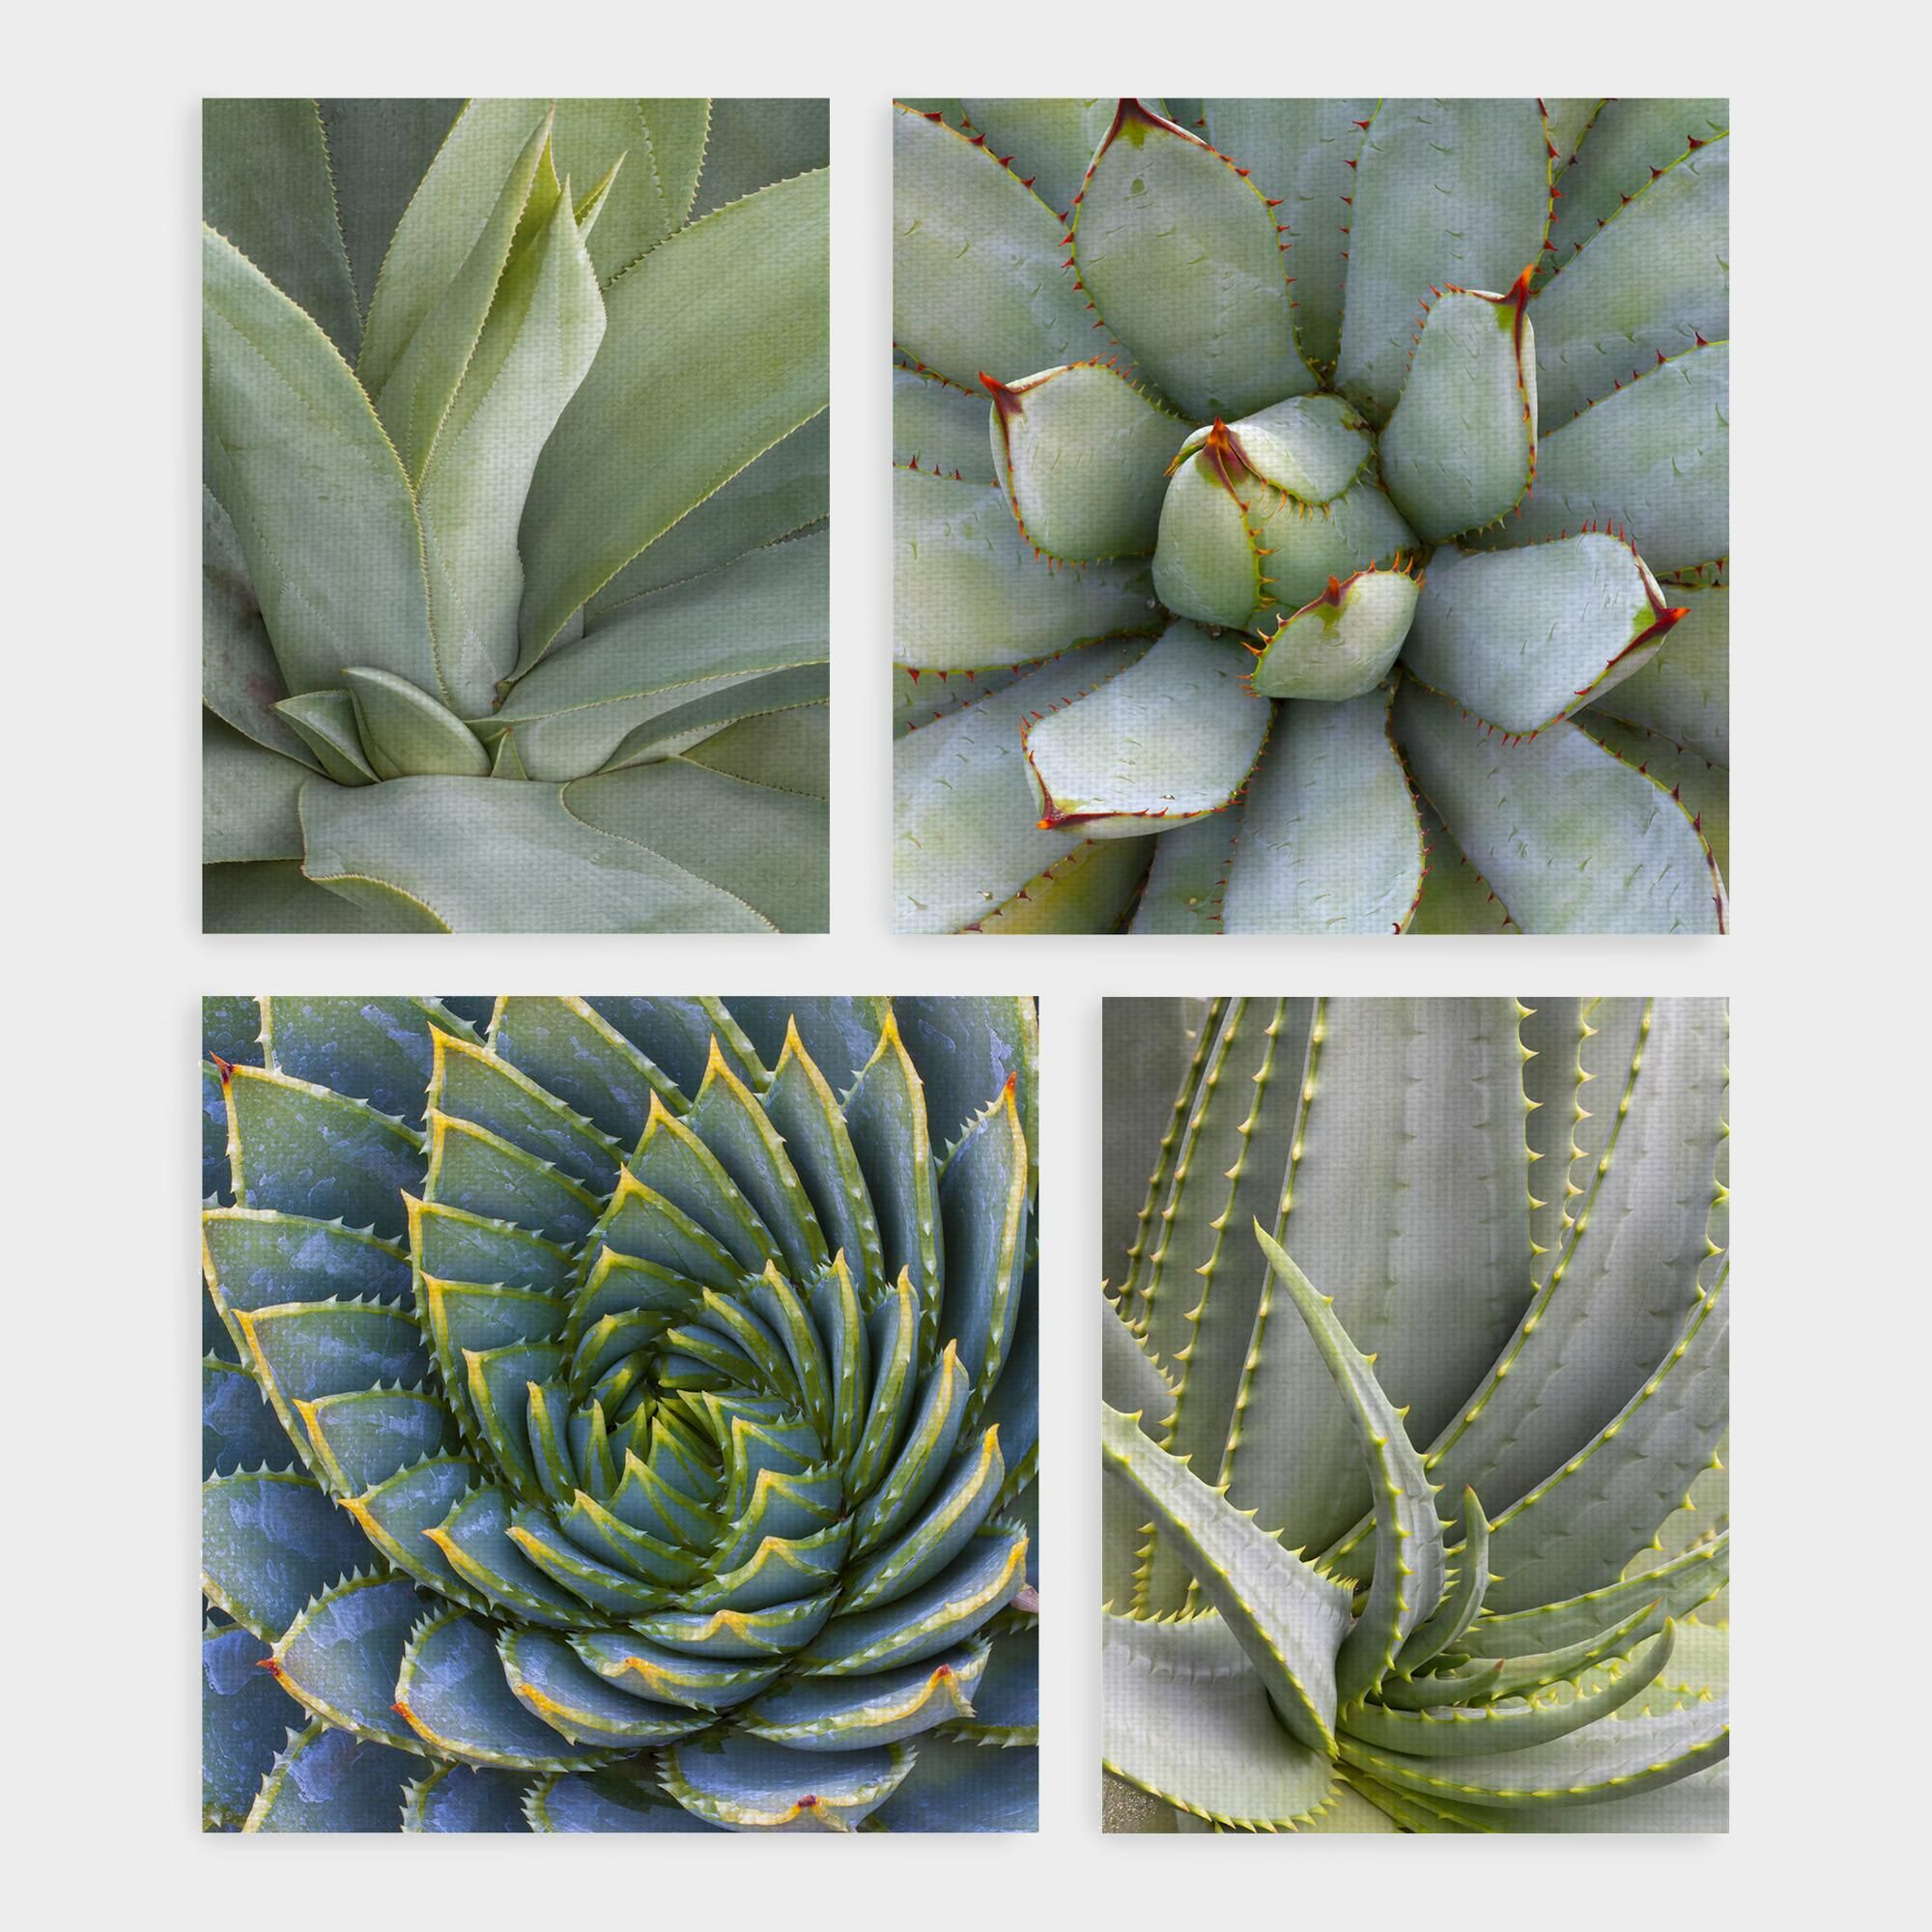 b5333a5f207 Succulents by Robin Hanson Canvas Print Wall Art Set of 4 - Large by World  Market